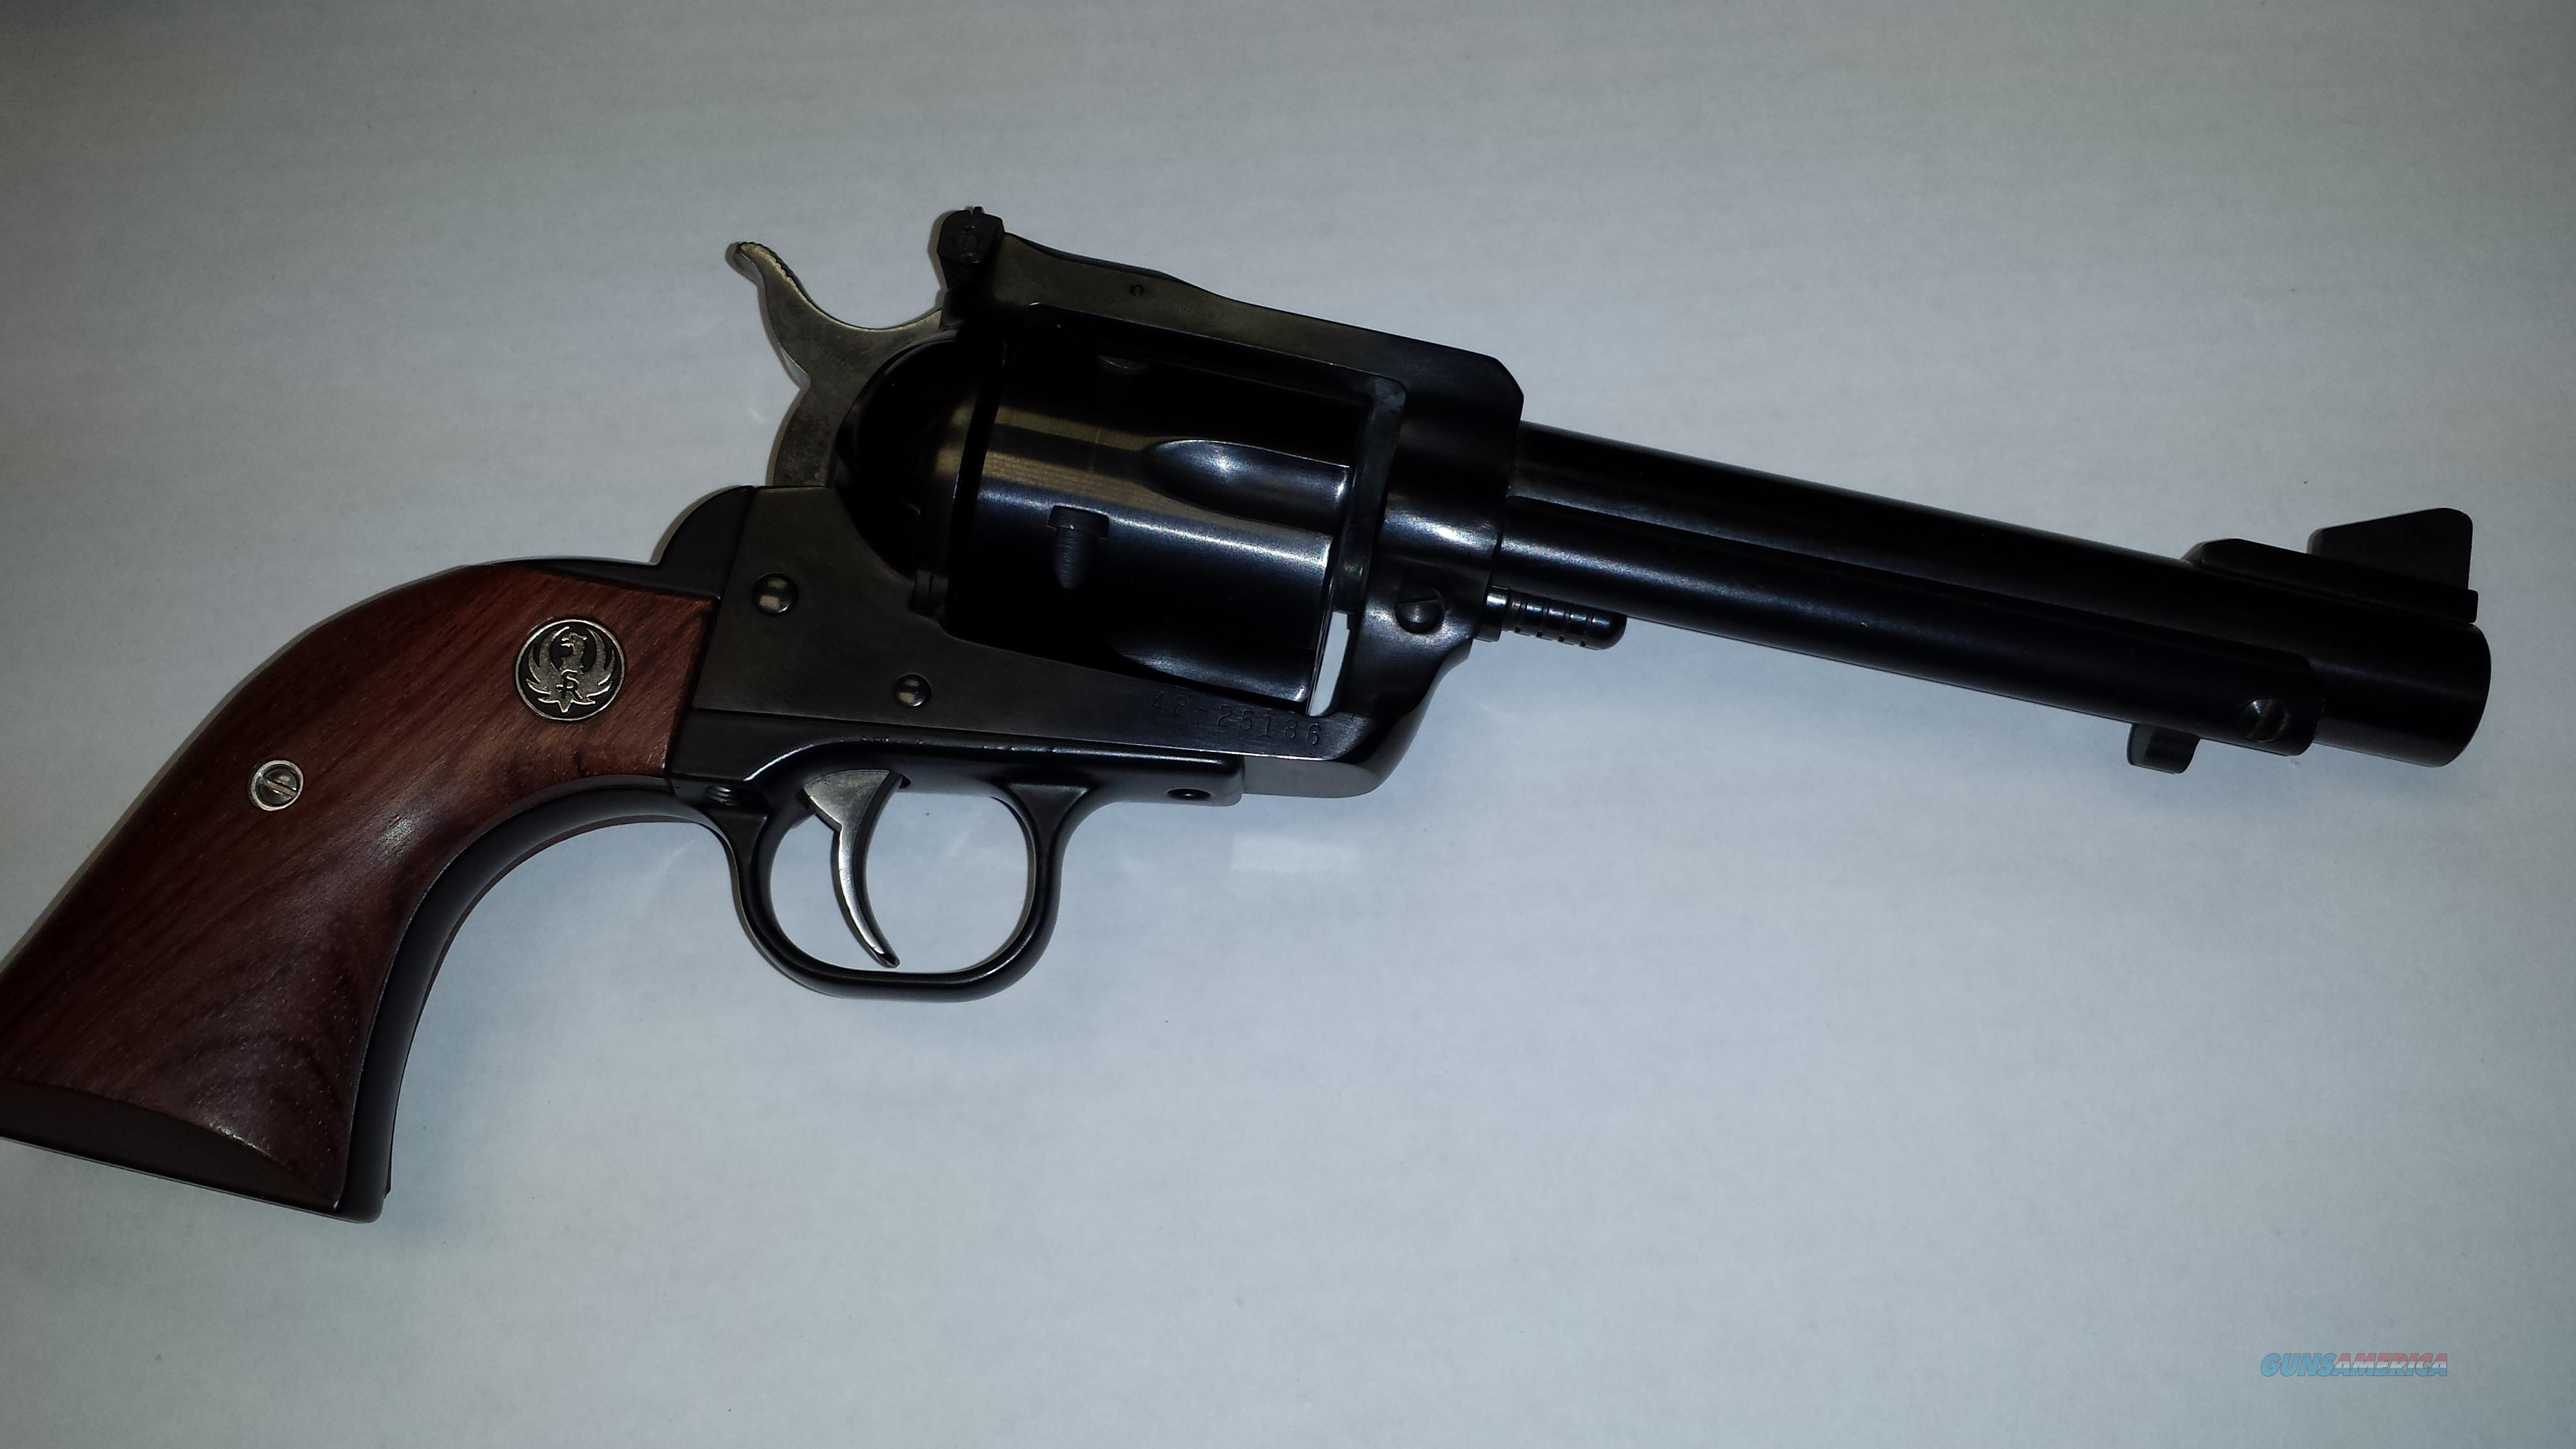 Ruger New Model Blackhawk 45 Long Colt LC  Guns > Pistols > Ruger Single Action Revolvers > Blackhawk Type